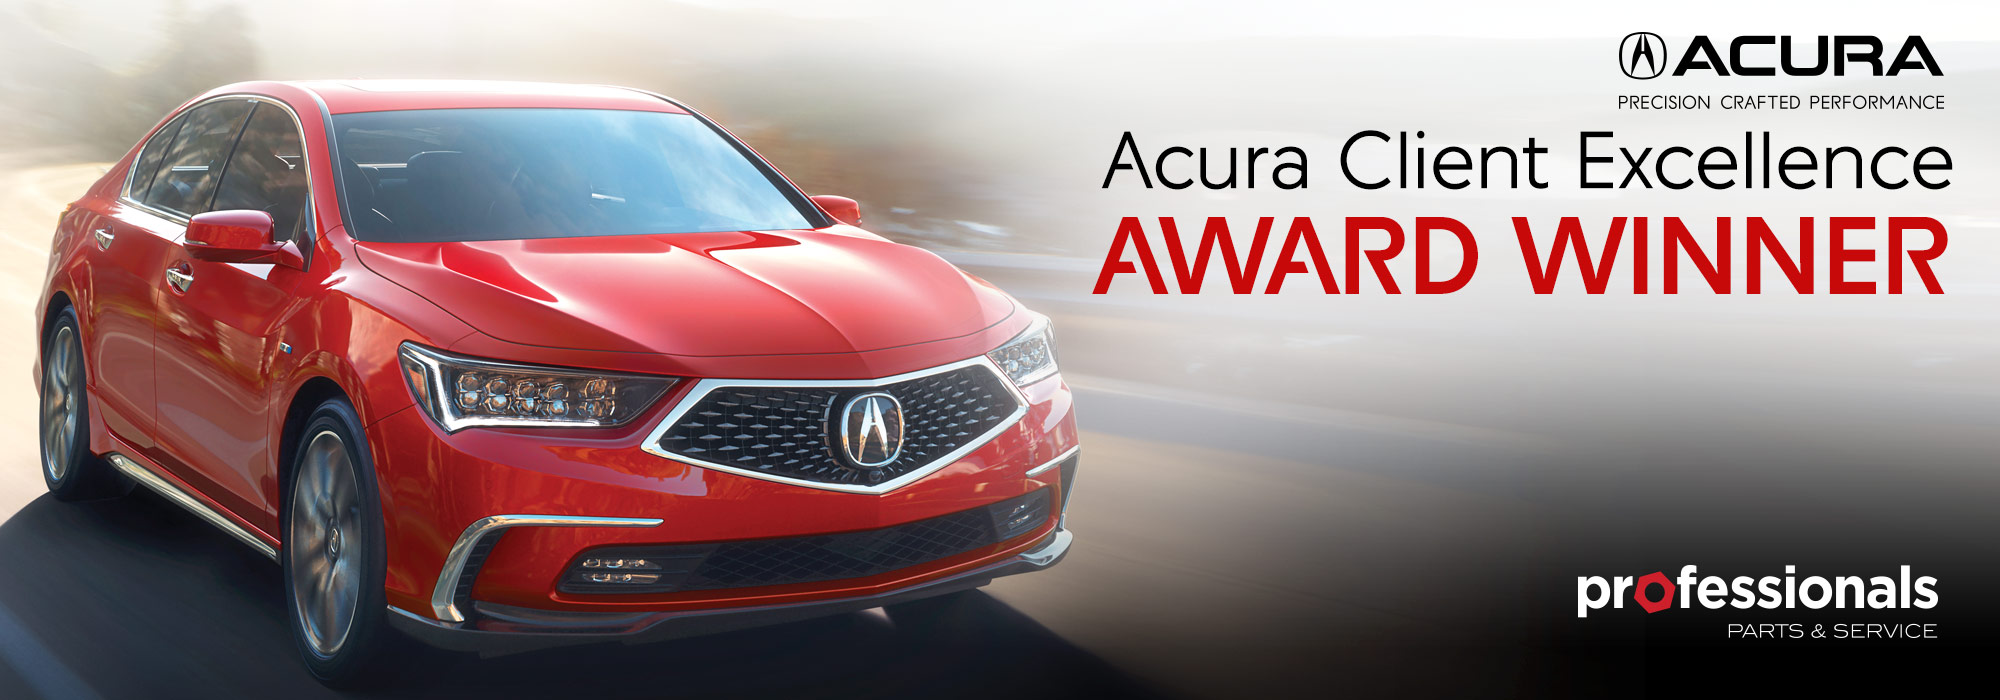 used lovely cars dealer carz best inspirational ca dealership acura pinterest in auto sacramento parts of tl